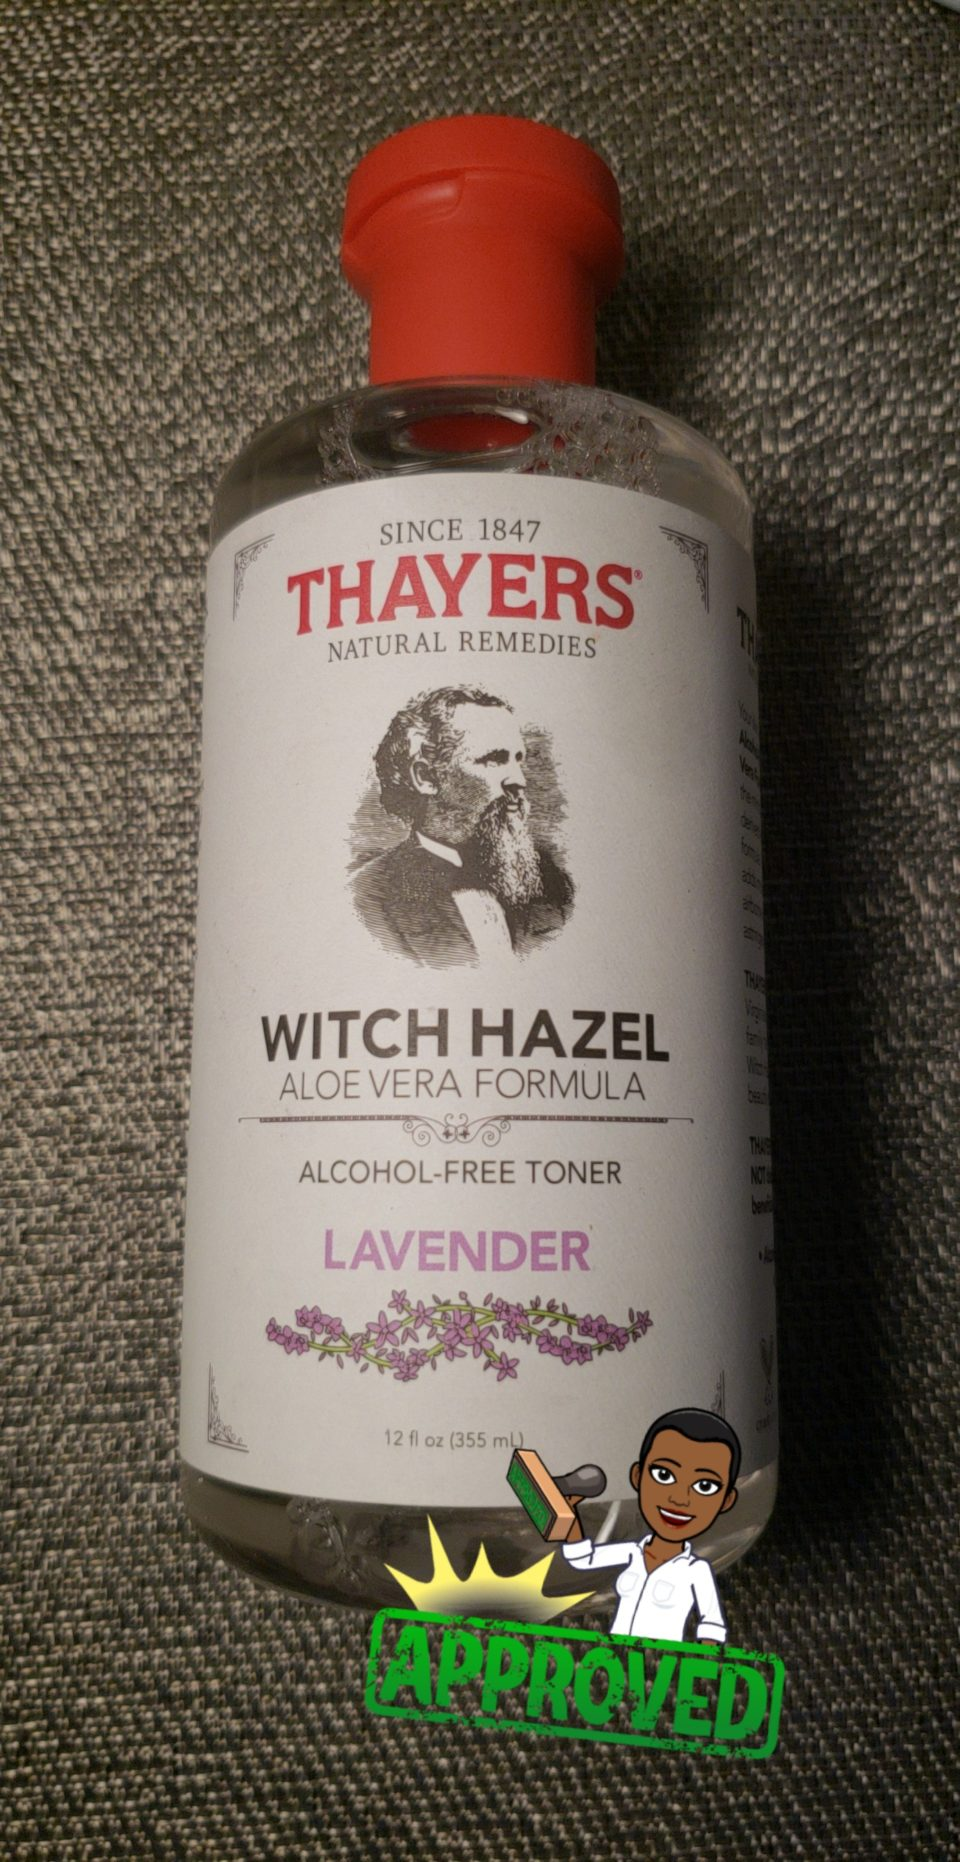 Thayers Lavender Witch Hazel